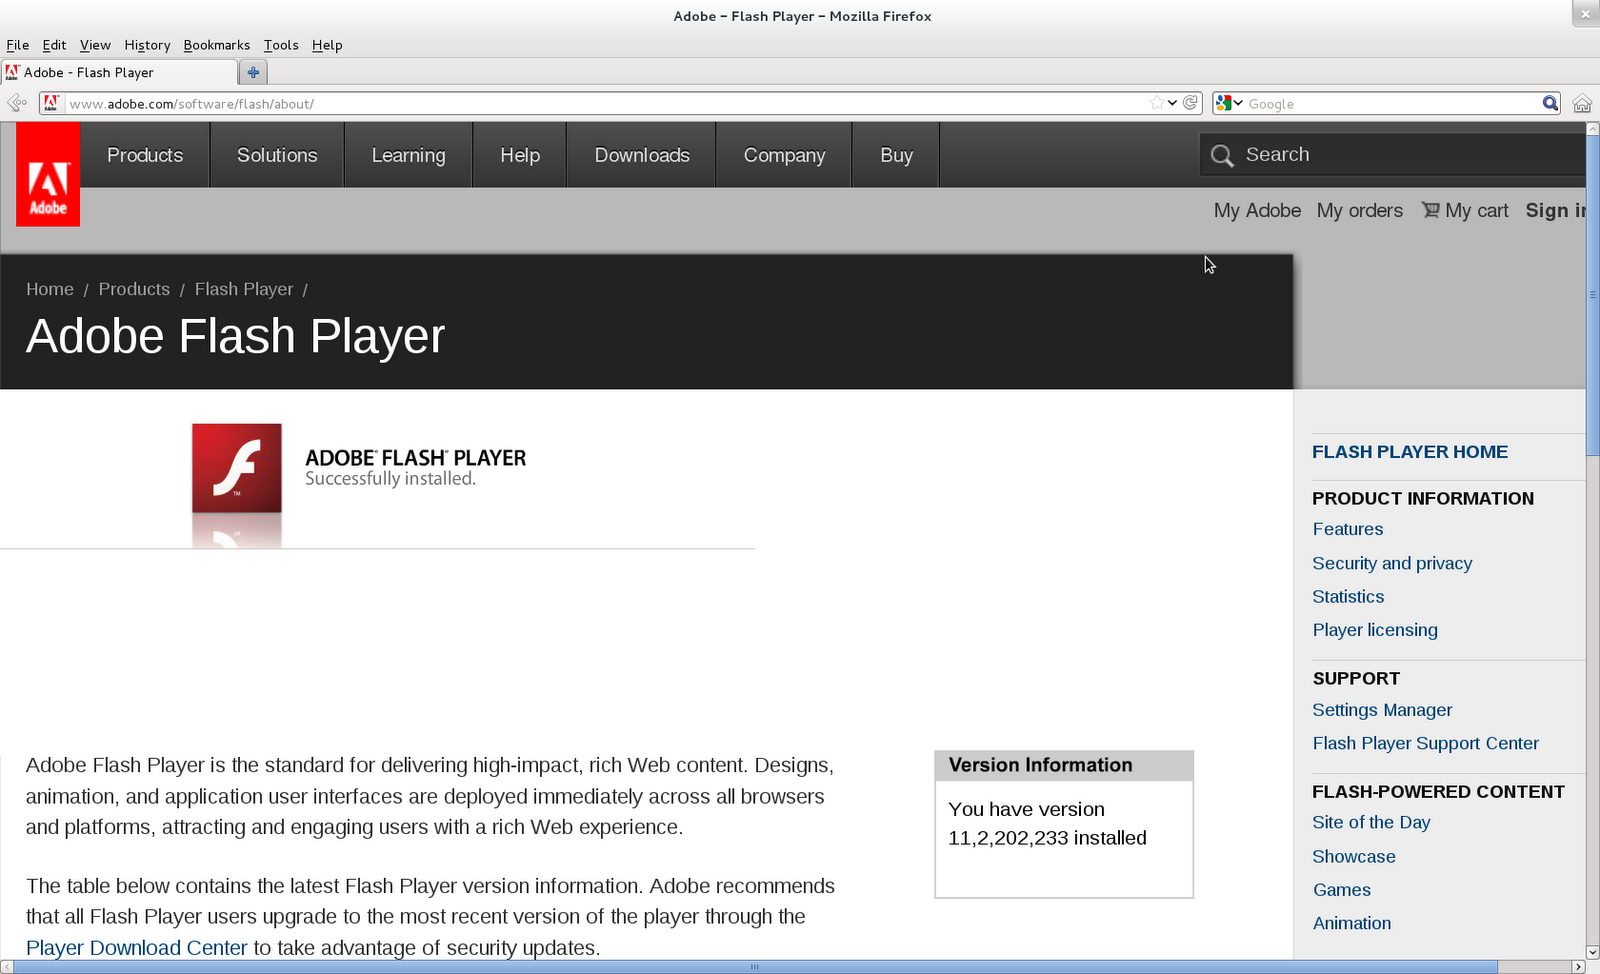 TechnoZeal: Install Adobe Flash Player on Fedora 16 / Fedora 17